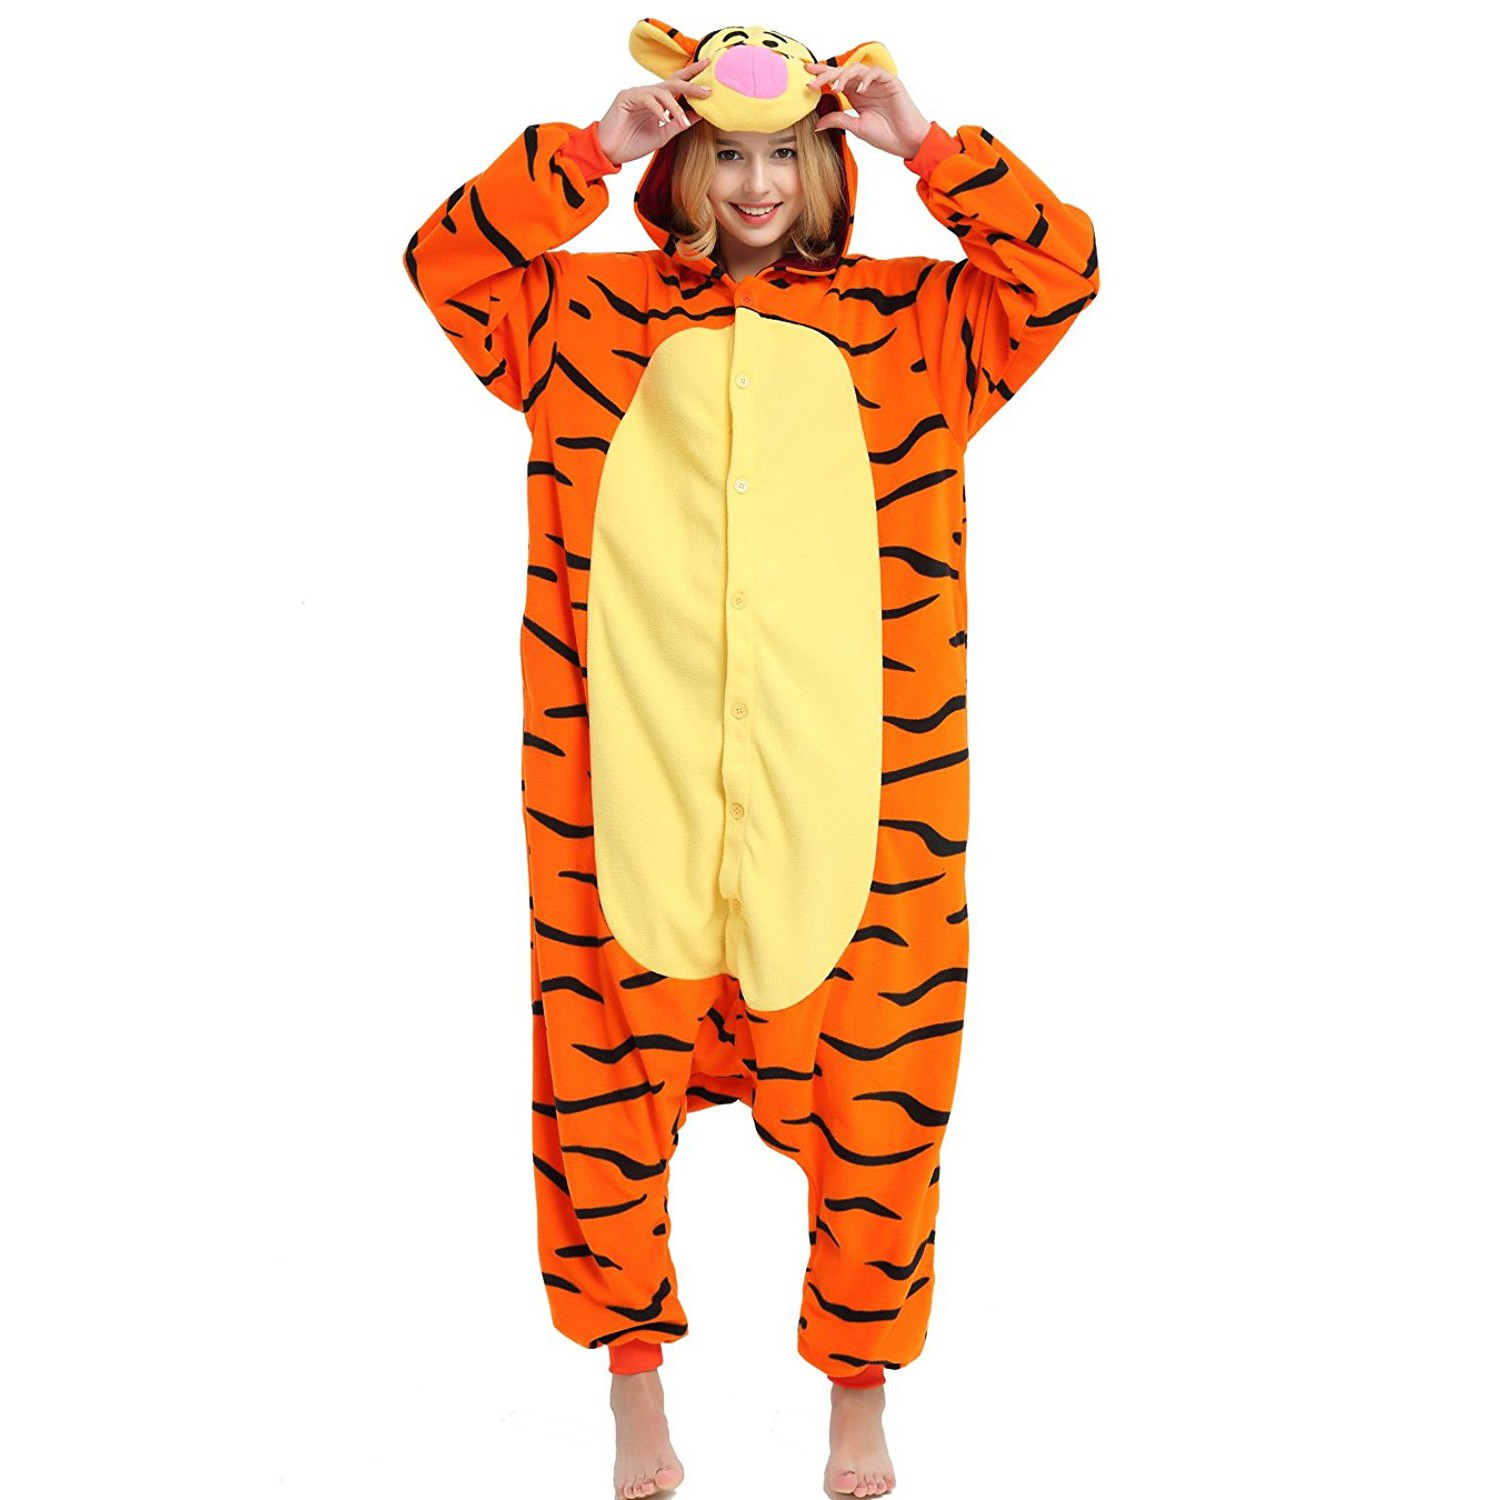 cd5c877d76eb Winnie the Pooh Tigger Onesie for Adult Disney Kigurumi Pajamas Party  Halloween Costumes